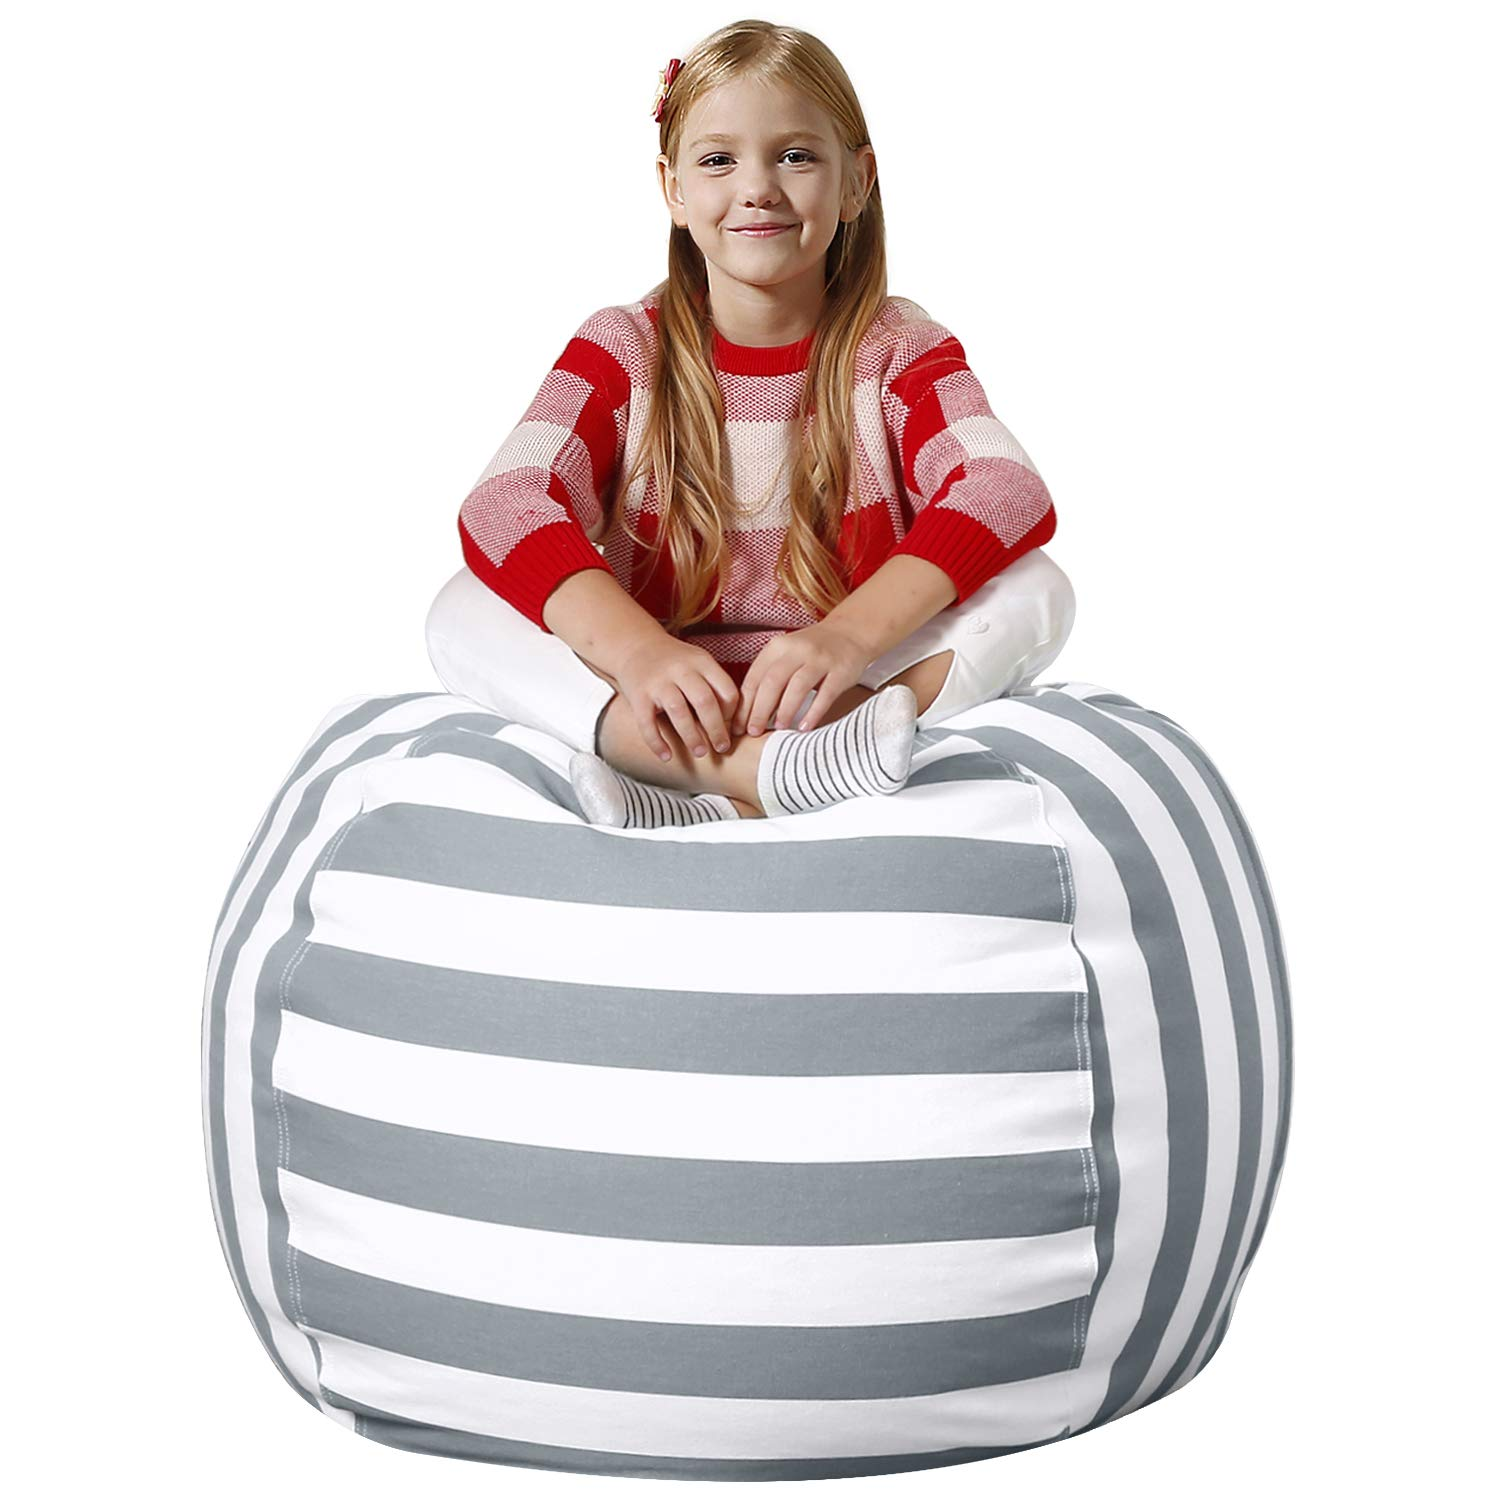 Aubliss Stuffed Animal Bean Bag Storage Chair, Beanbag Covers Only for Organizing Plush Toys. Turns into Bean Bag Seat for Kids When Filled. Premium Cotton Canvas. 38'' Extra Large Gray/White Striped by Aubliss